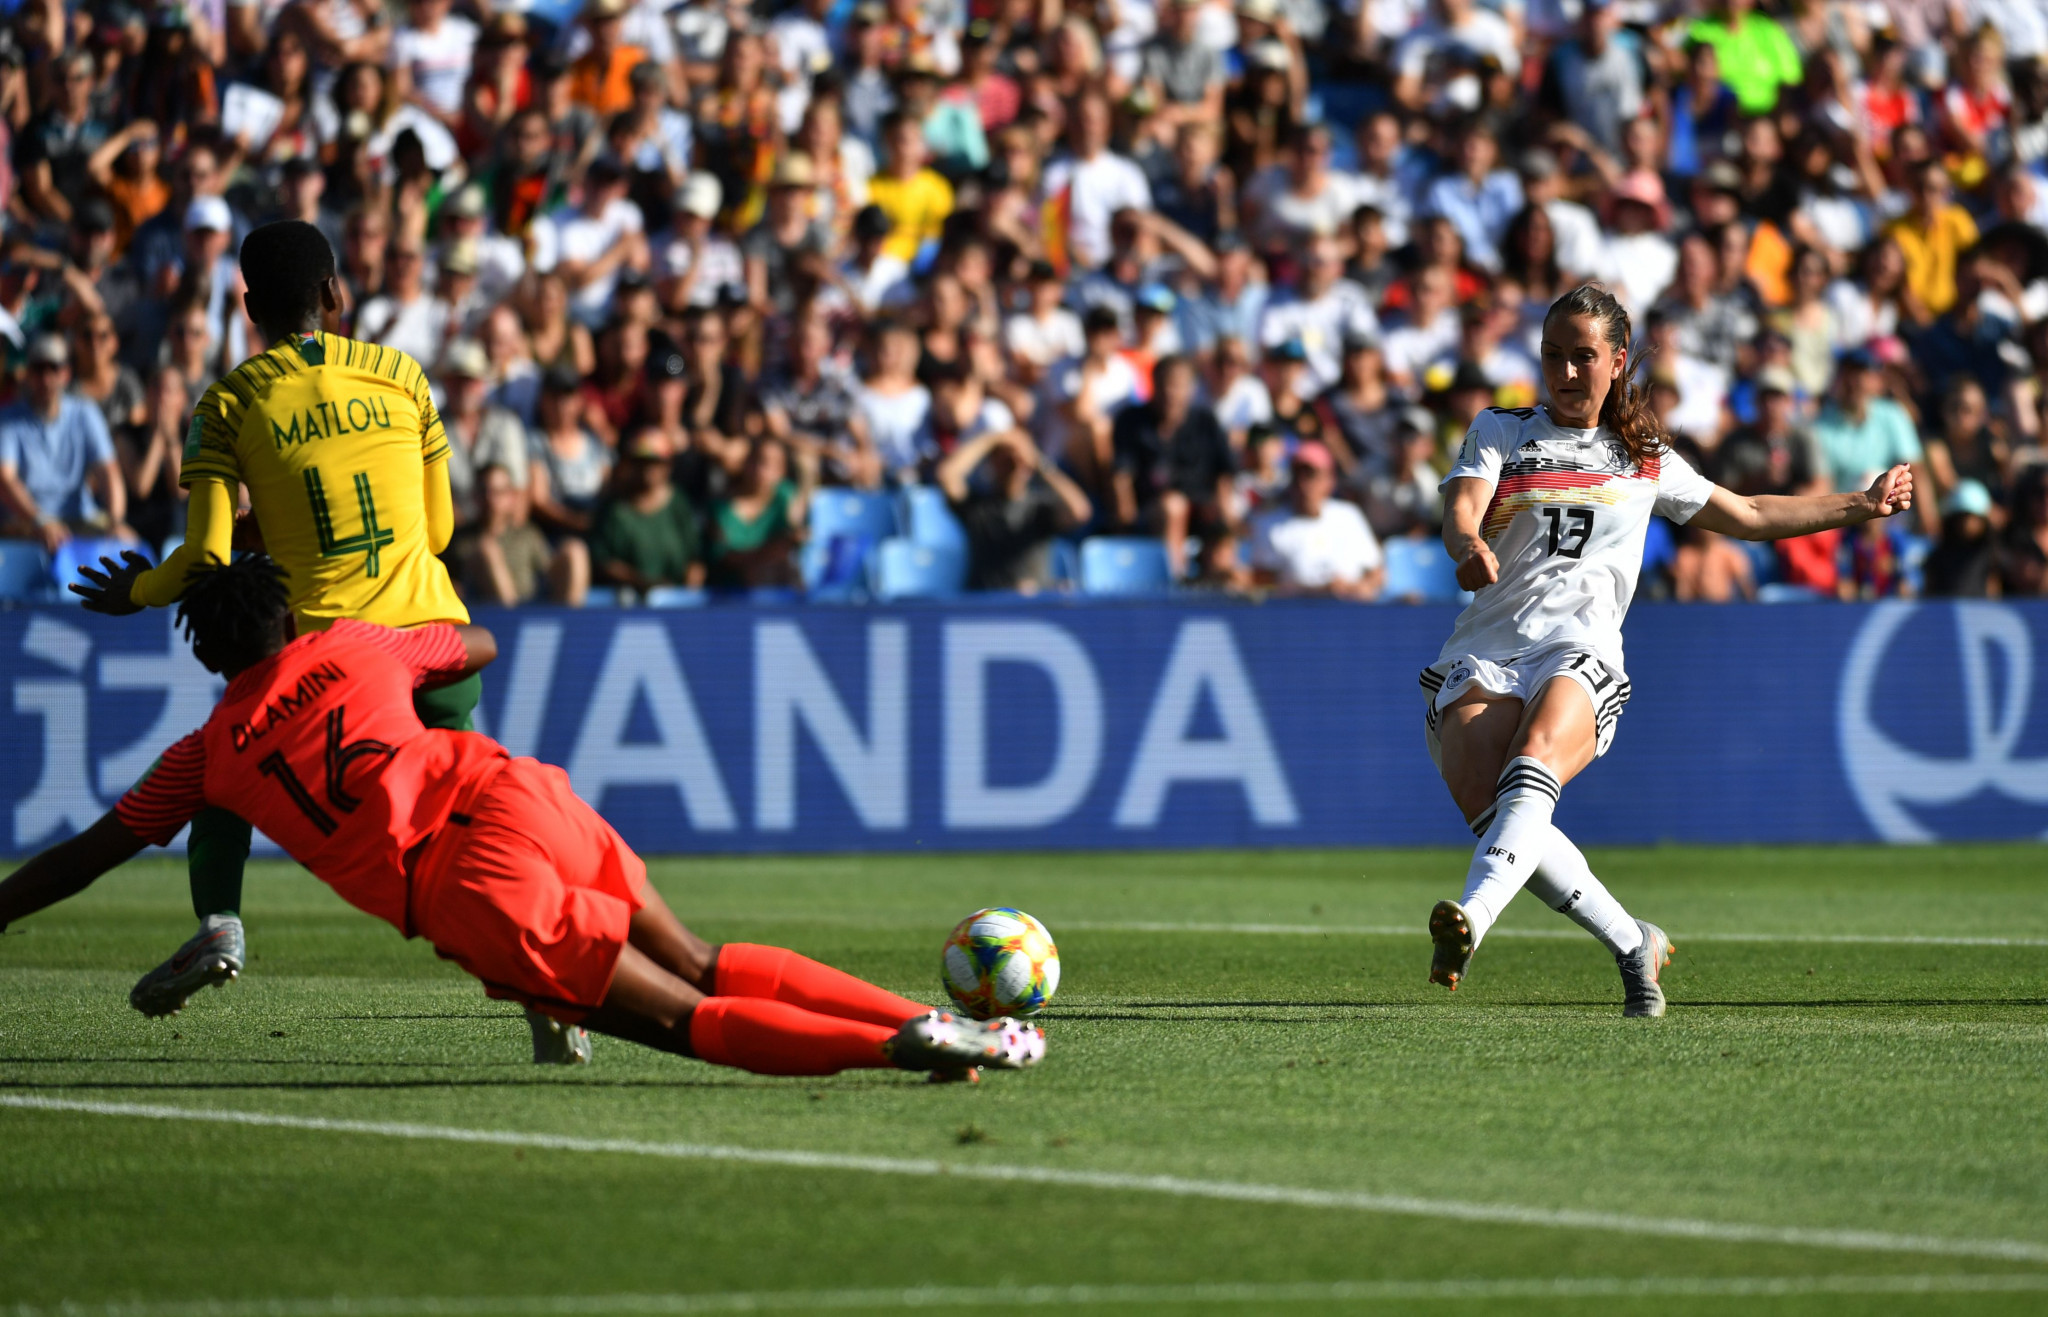 Sara Dabritz doubles Germany's lead after a glaring error from South Africa goalkeeper Andile Dlamini ©Getty Images